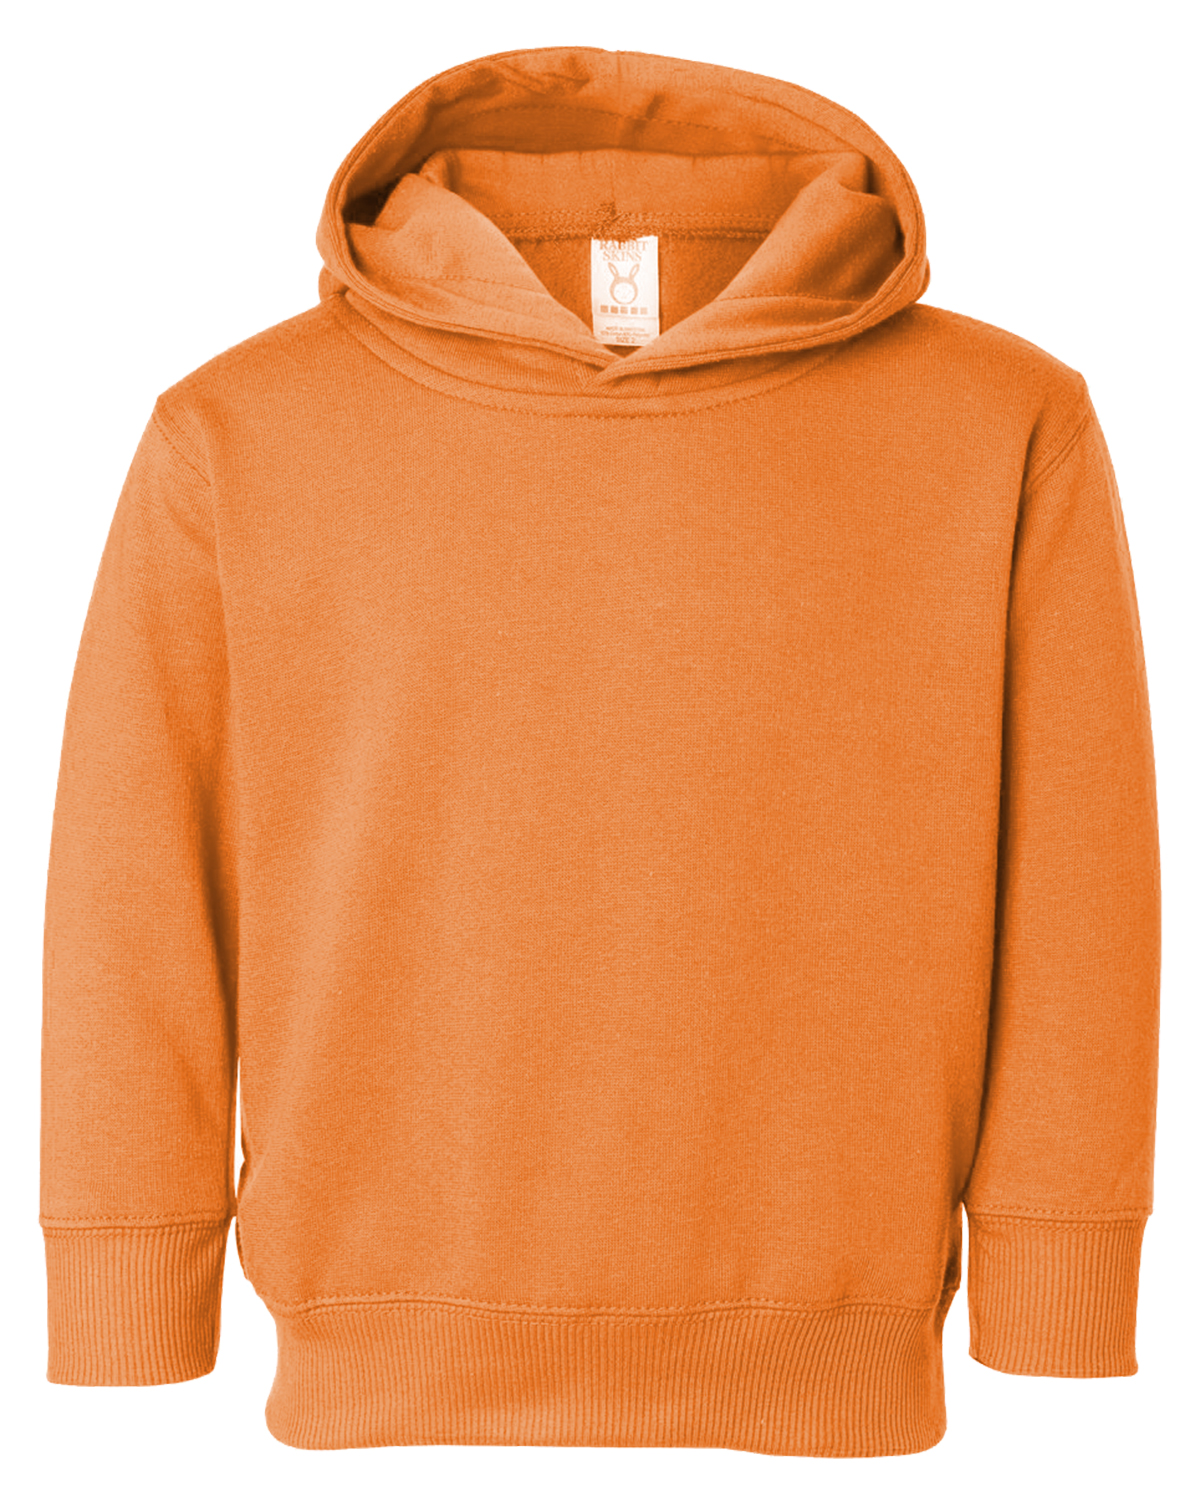 Rabbit Skins 3326 Toddlers Pullover Hoody at GotApparel